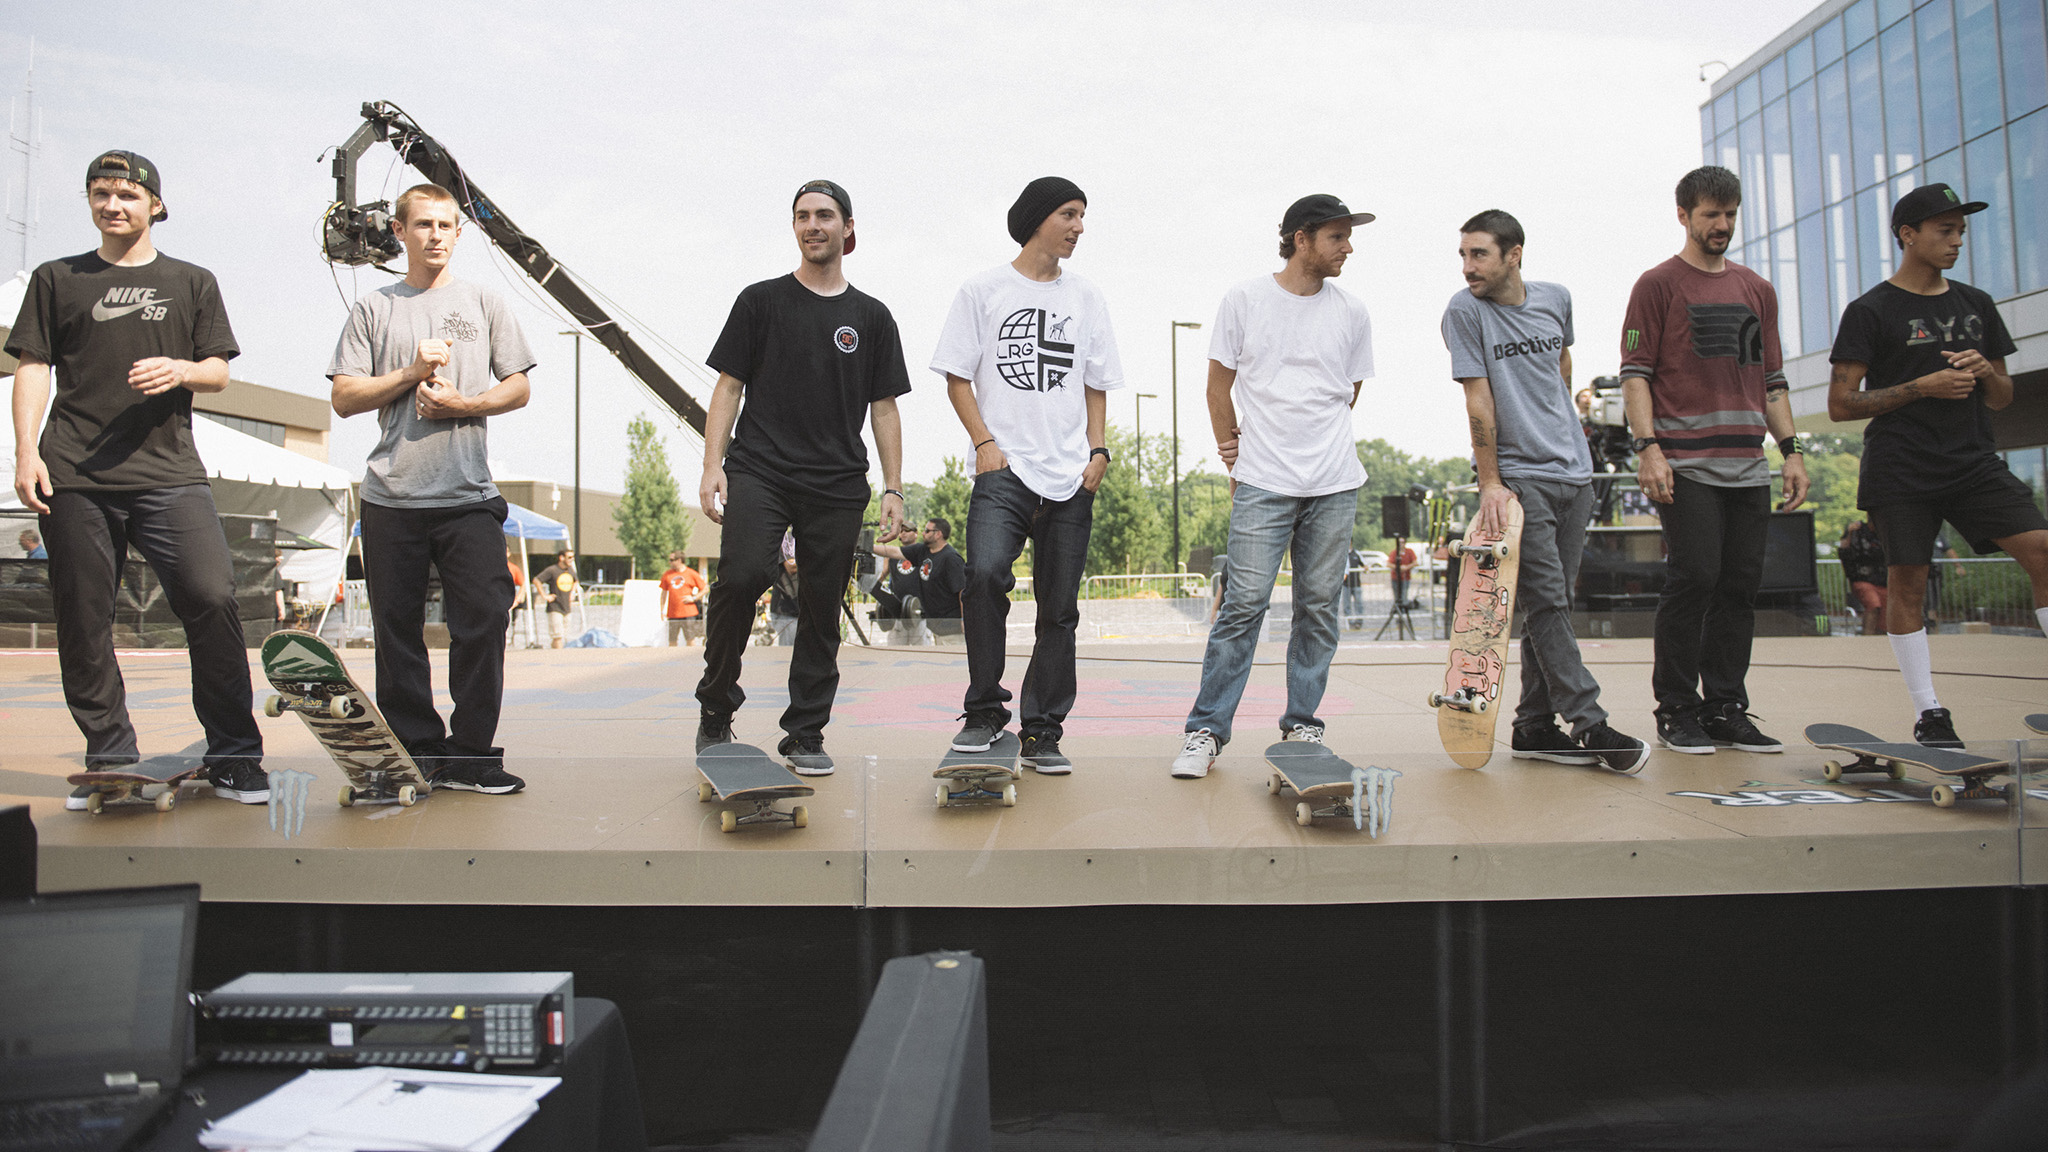 Game of Skate lineup